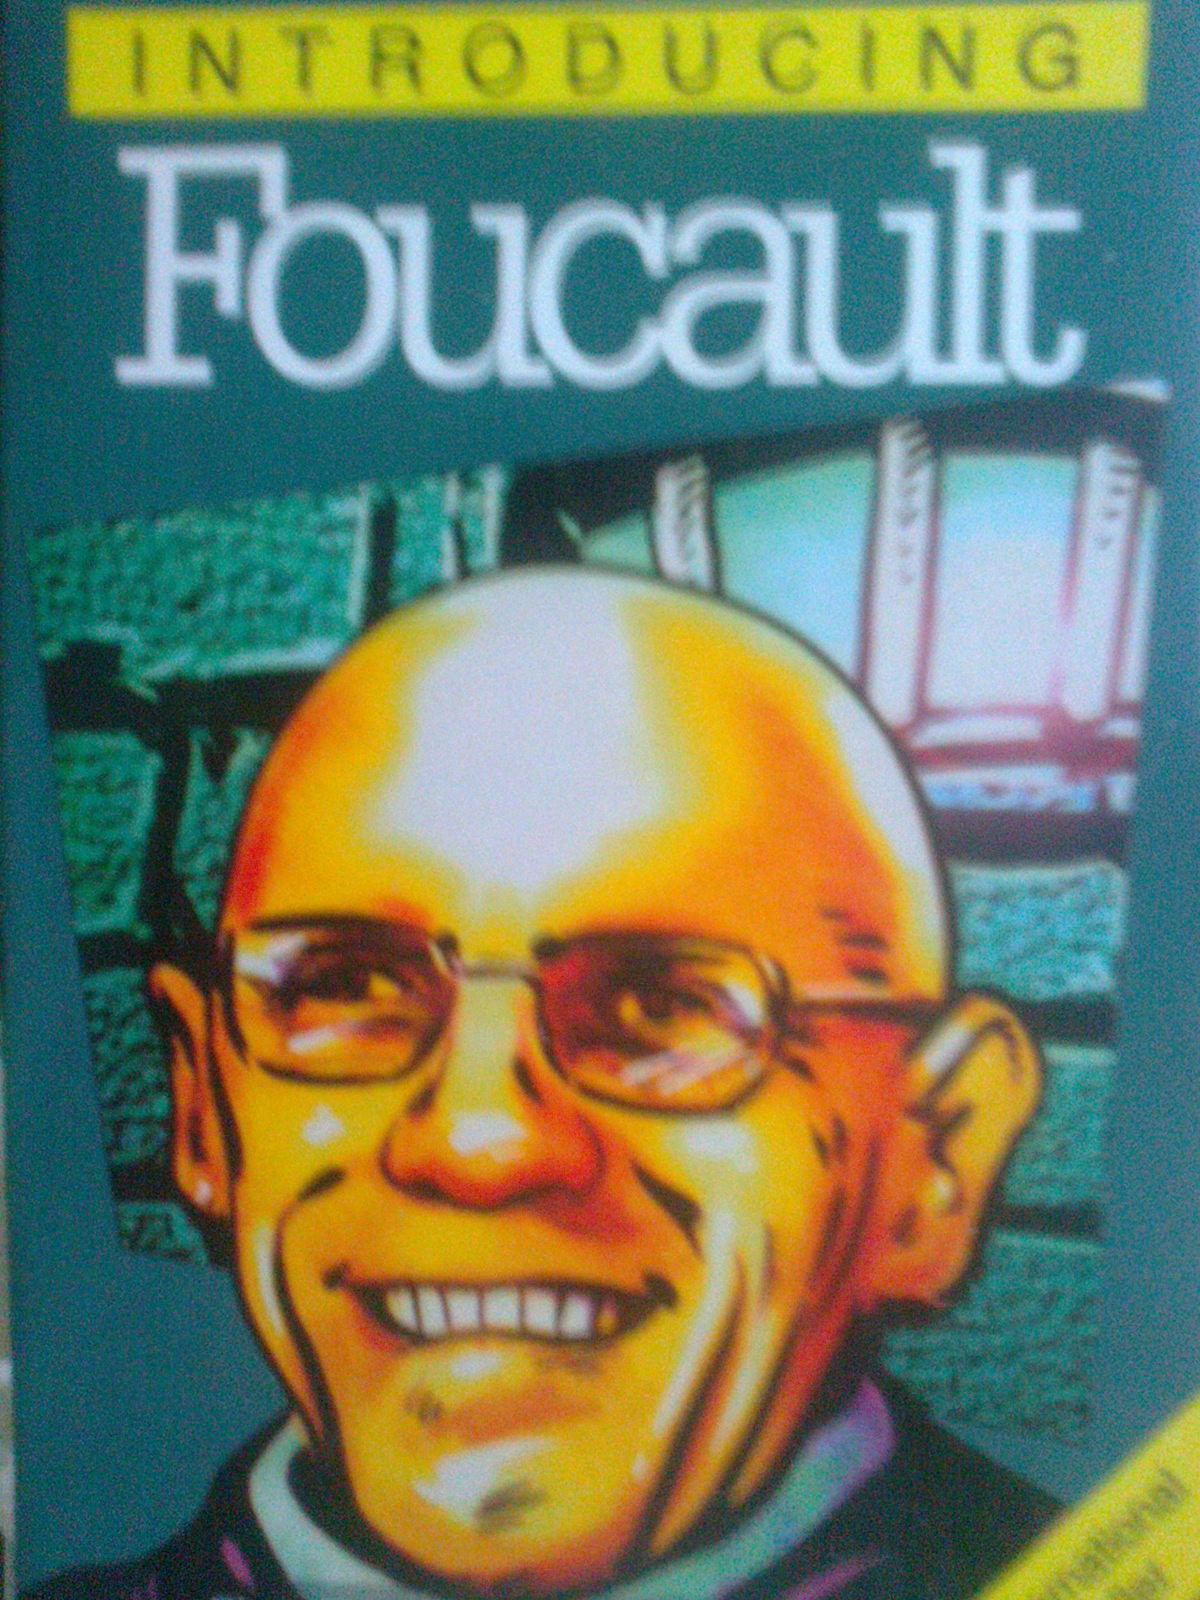 Introducing Foucault  1. - Horrocks, Zoran